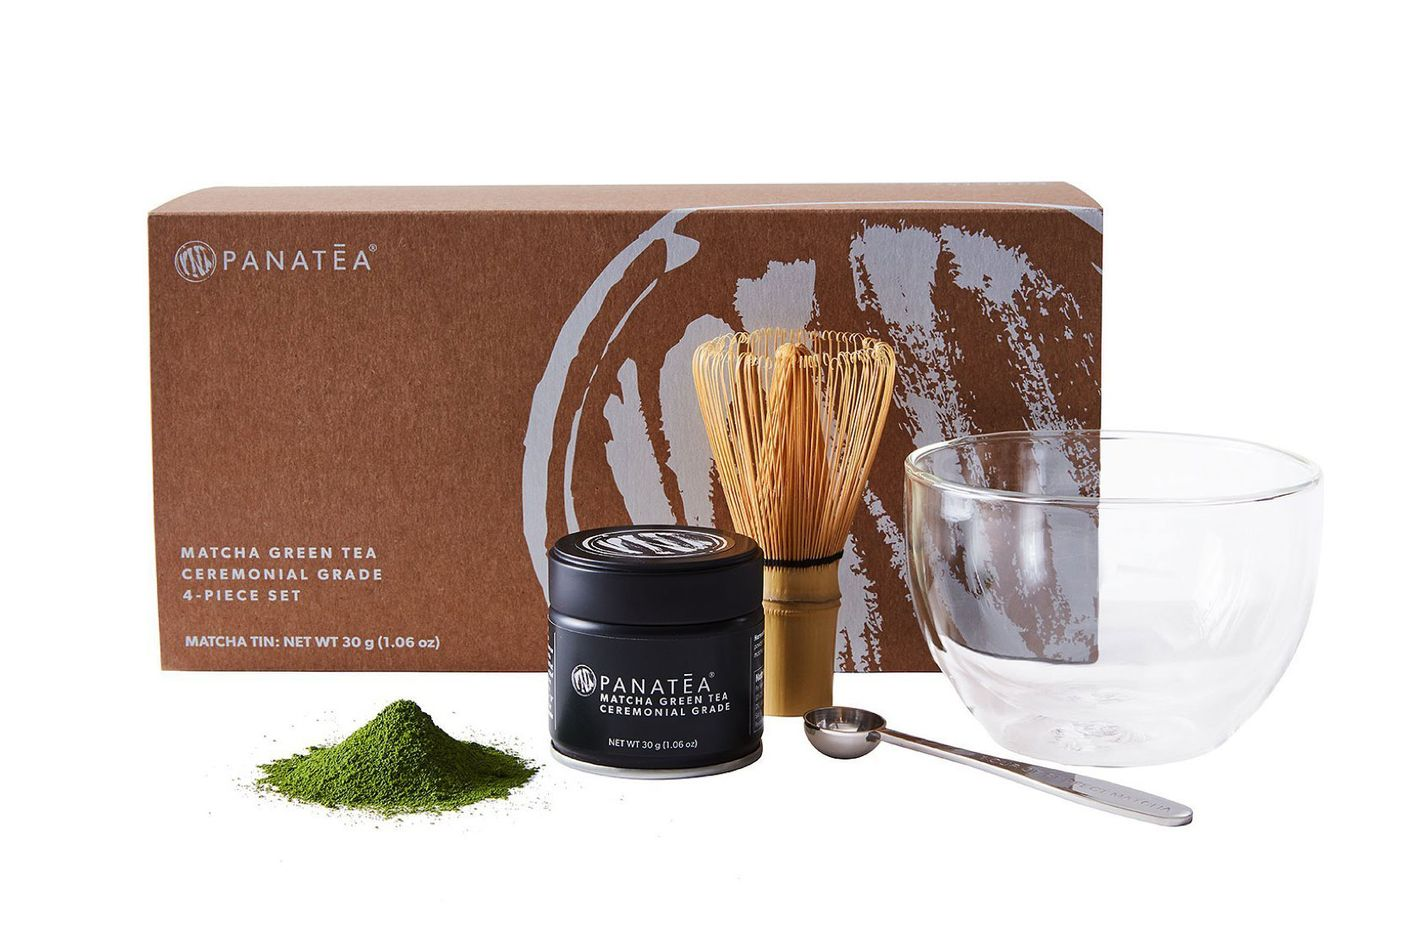 Panatea Matcha Green Tea Set